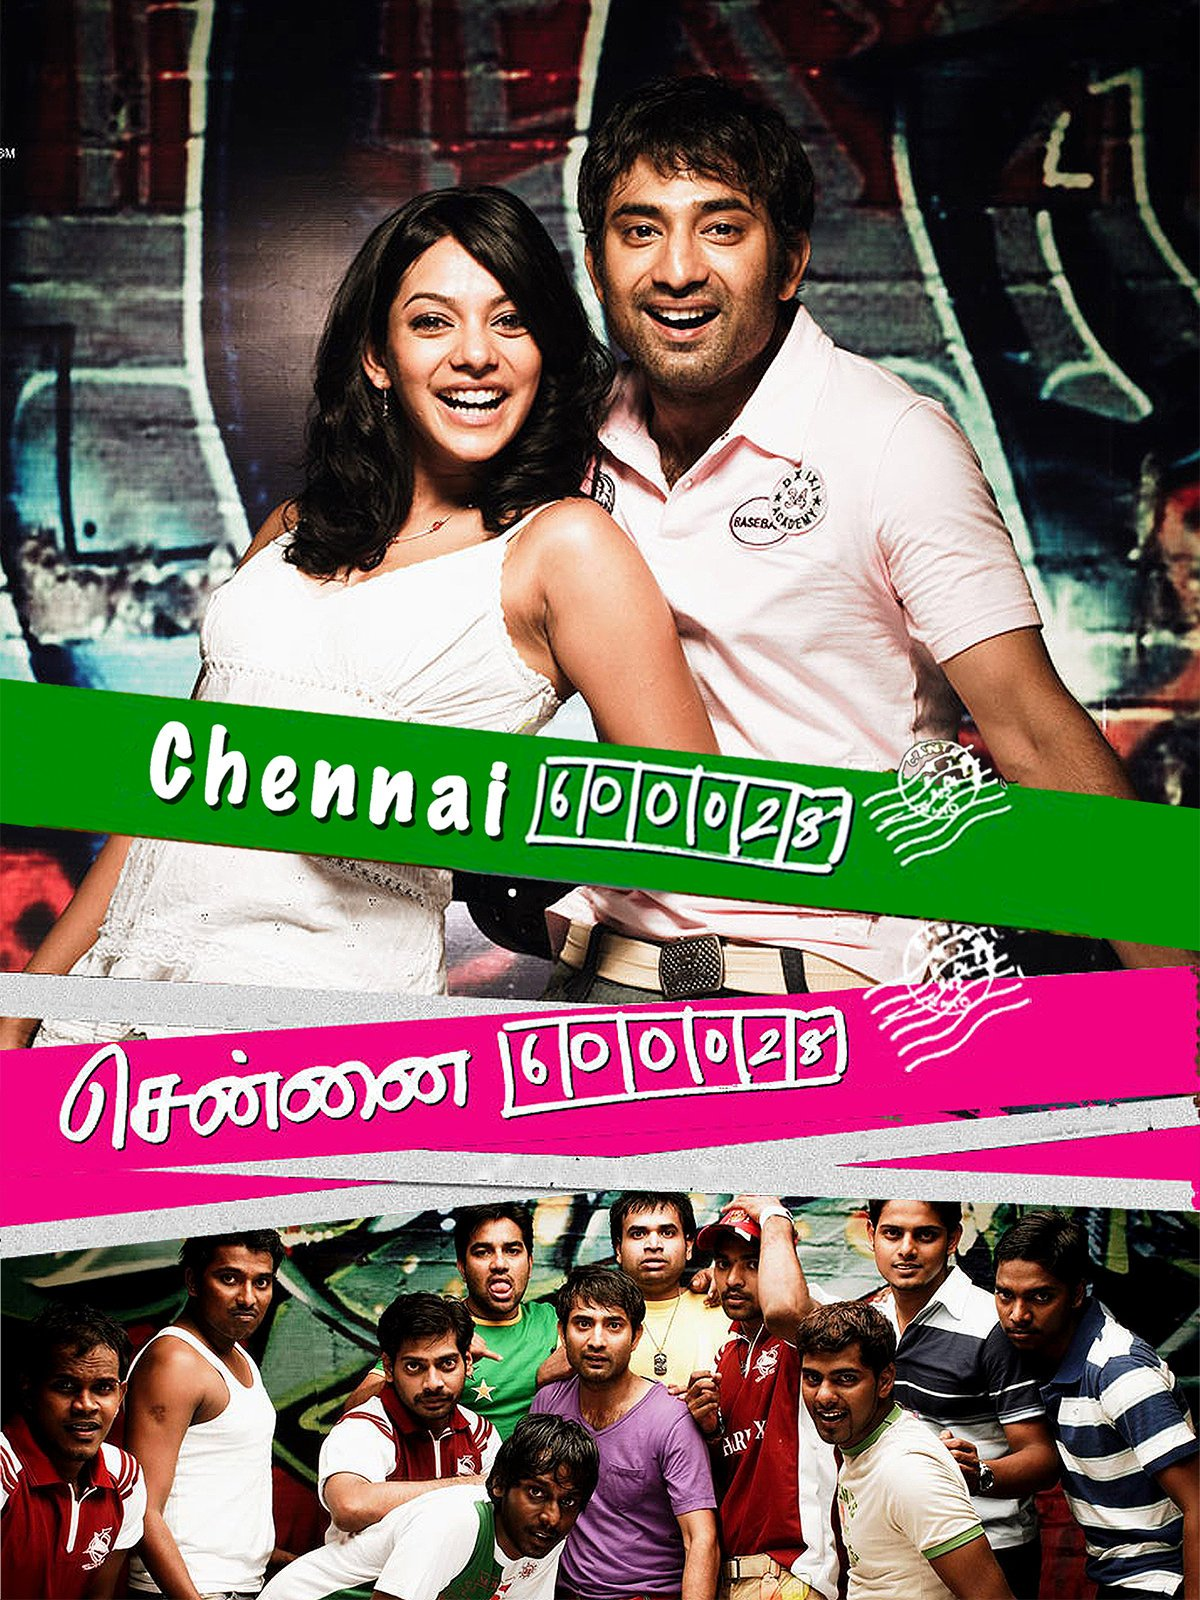 Chennai 600028 (2021) Hindi Dubbed 480p HDRip x264 AAC 600MB Download